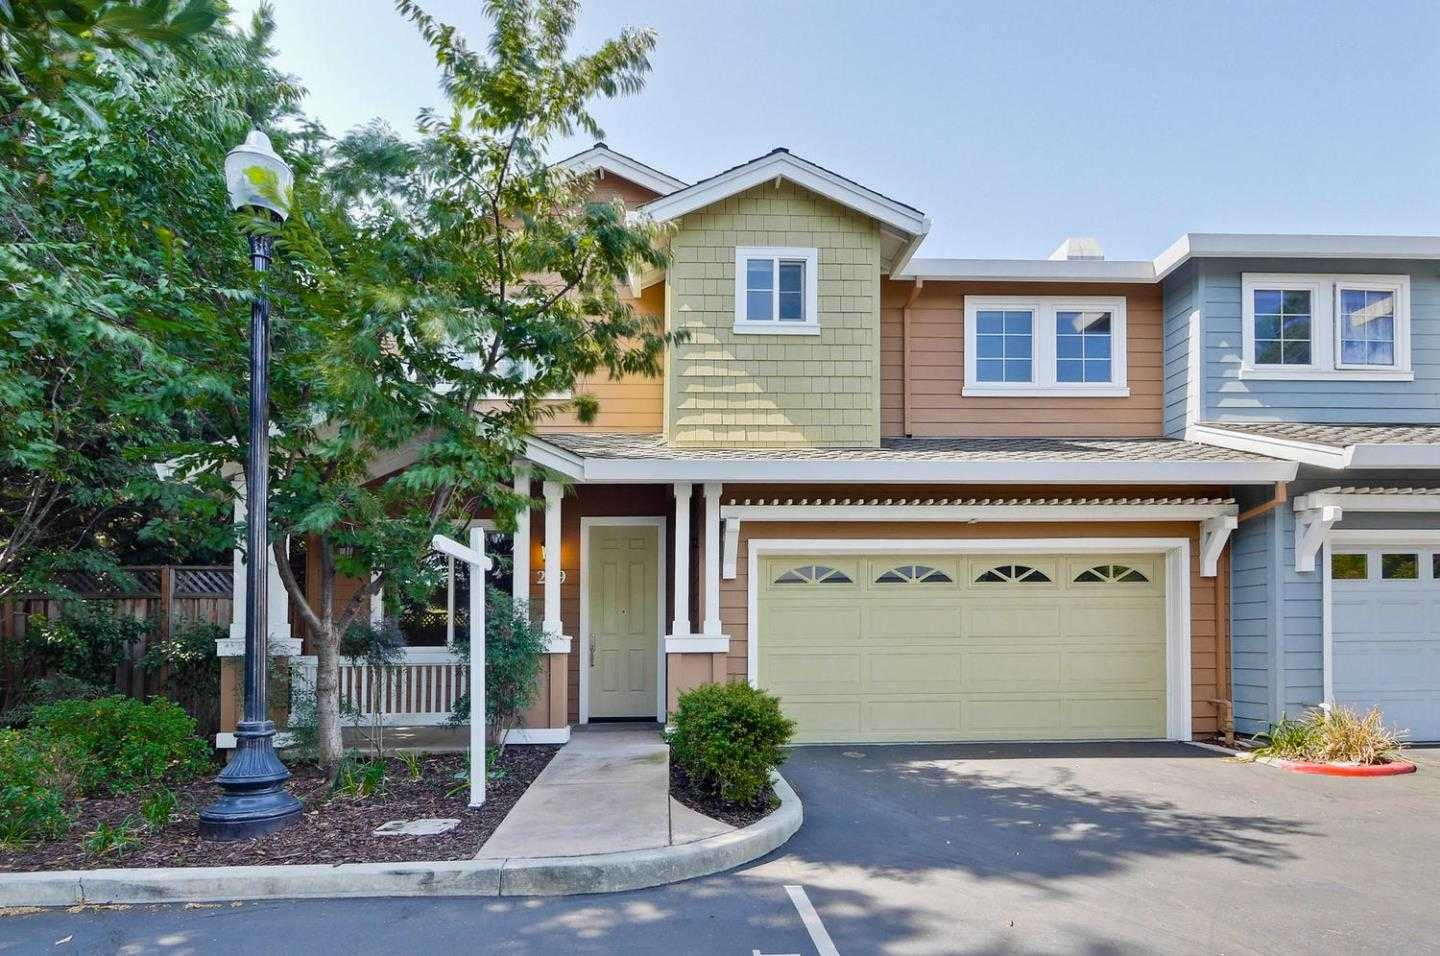 $1,498,000 - 4Br/3Ba -  for Sale in Mountain View